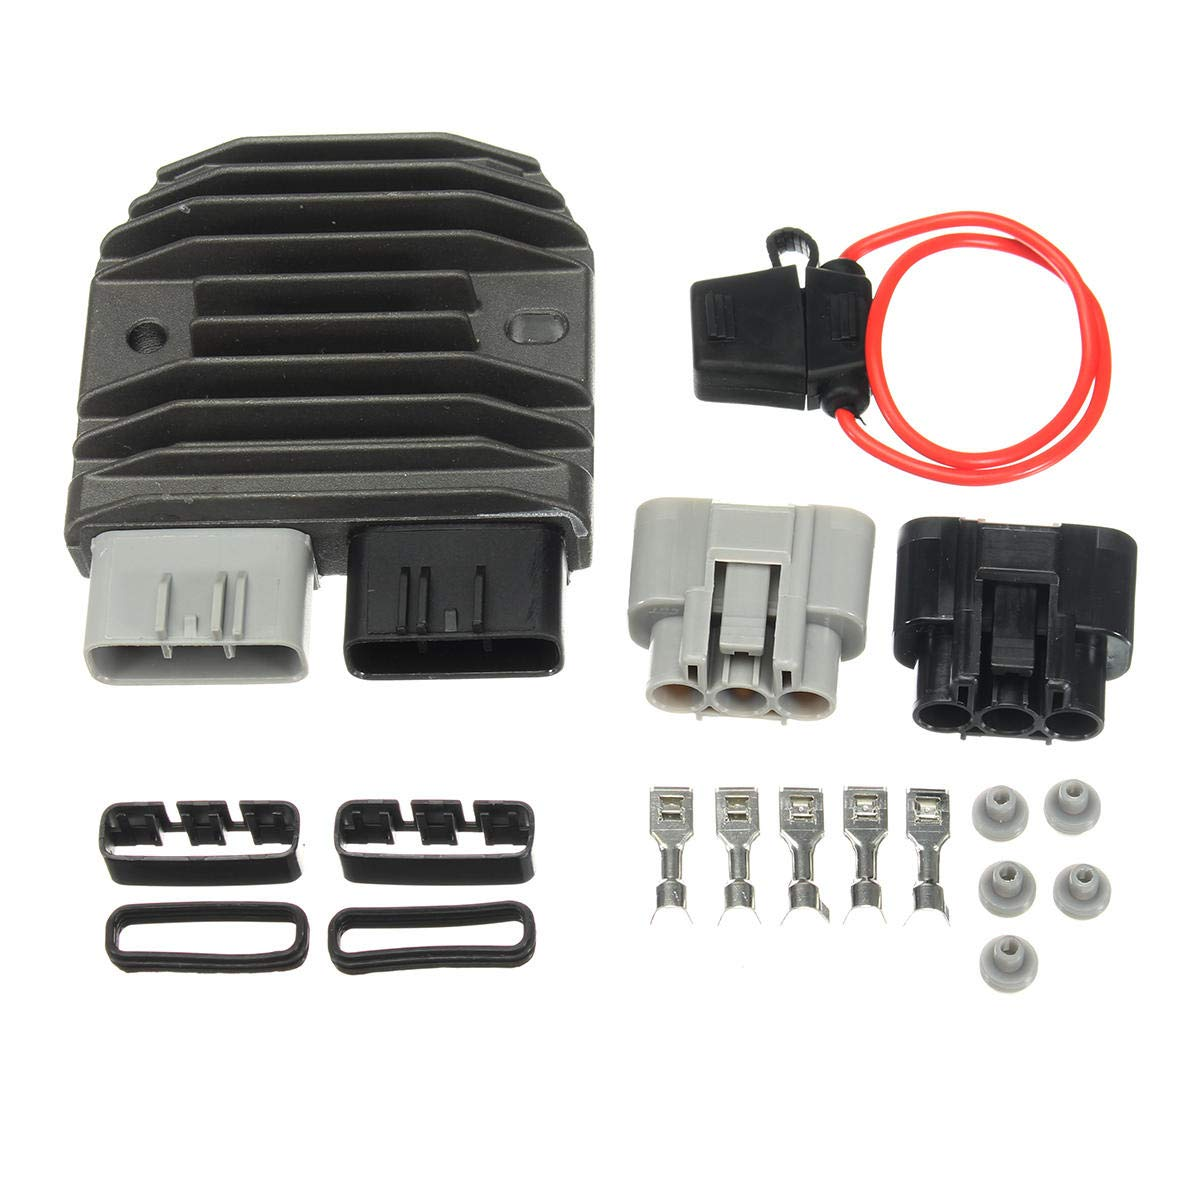 Ninth-City Regulator Rectifier Upgrade Kit Replaces FH012AA For SHINDENGEN MOSFET FH020AA